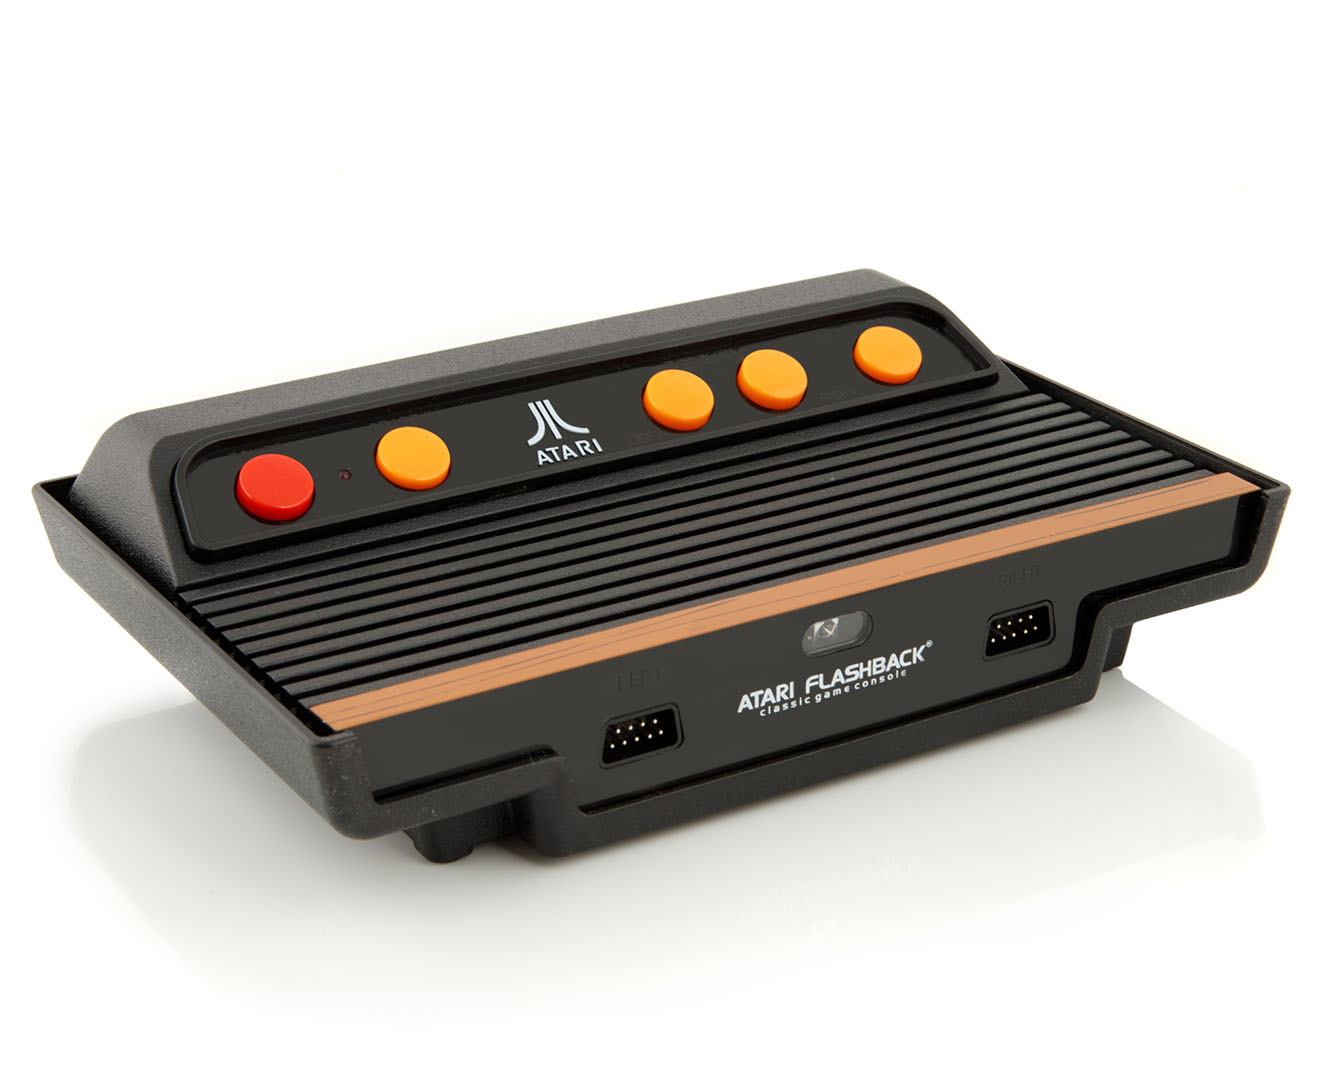 Atari flashback 7 classic game console 101 built in games - Atari flashback 3 classic game console ...